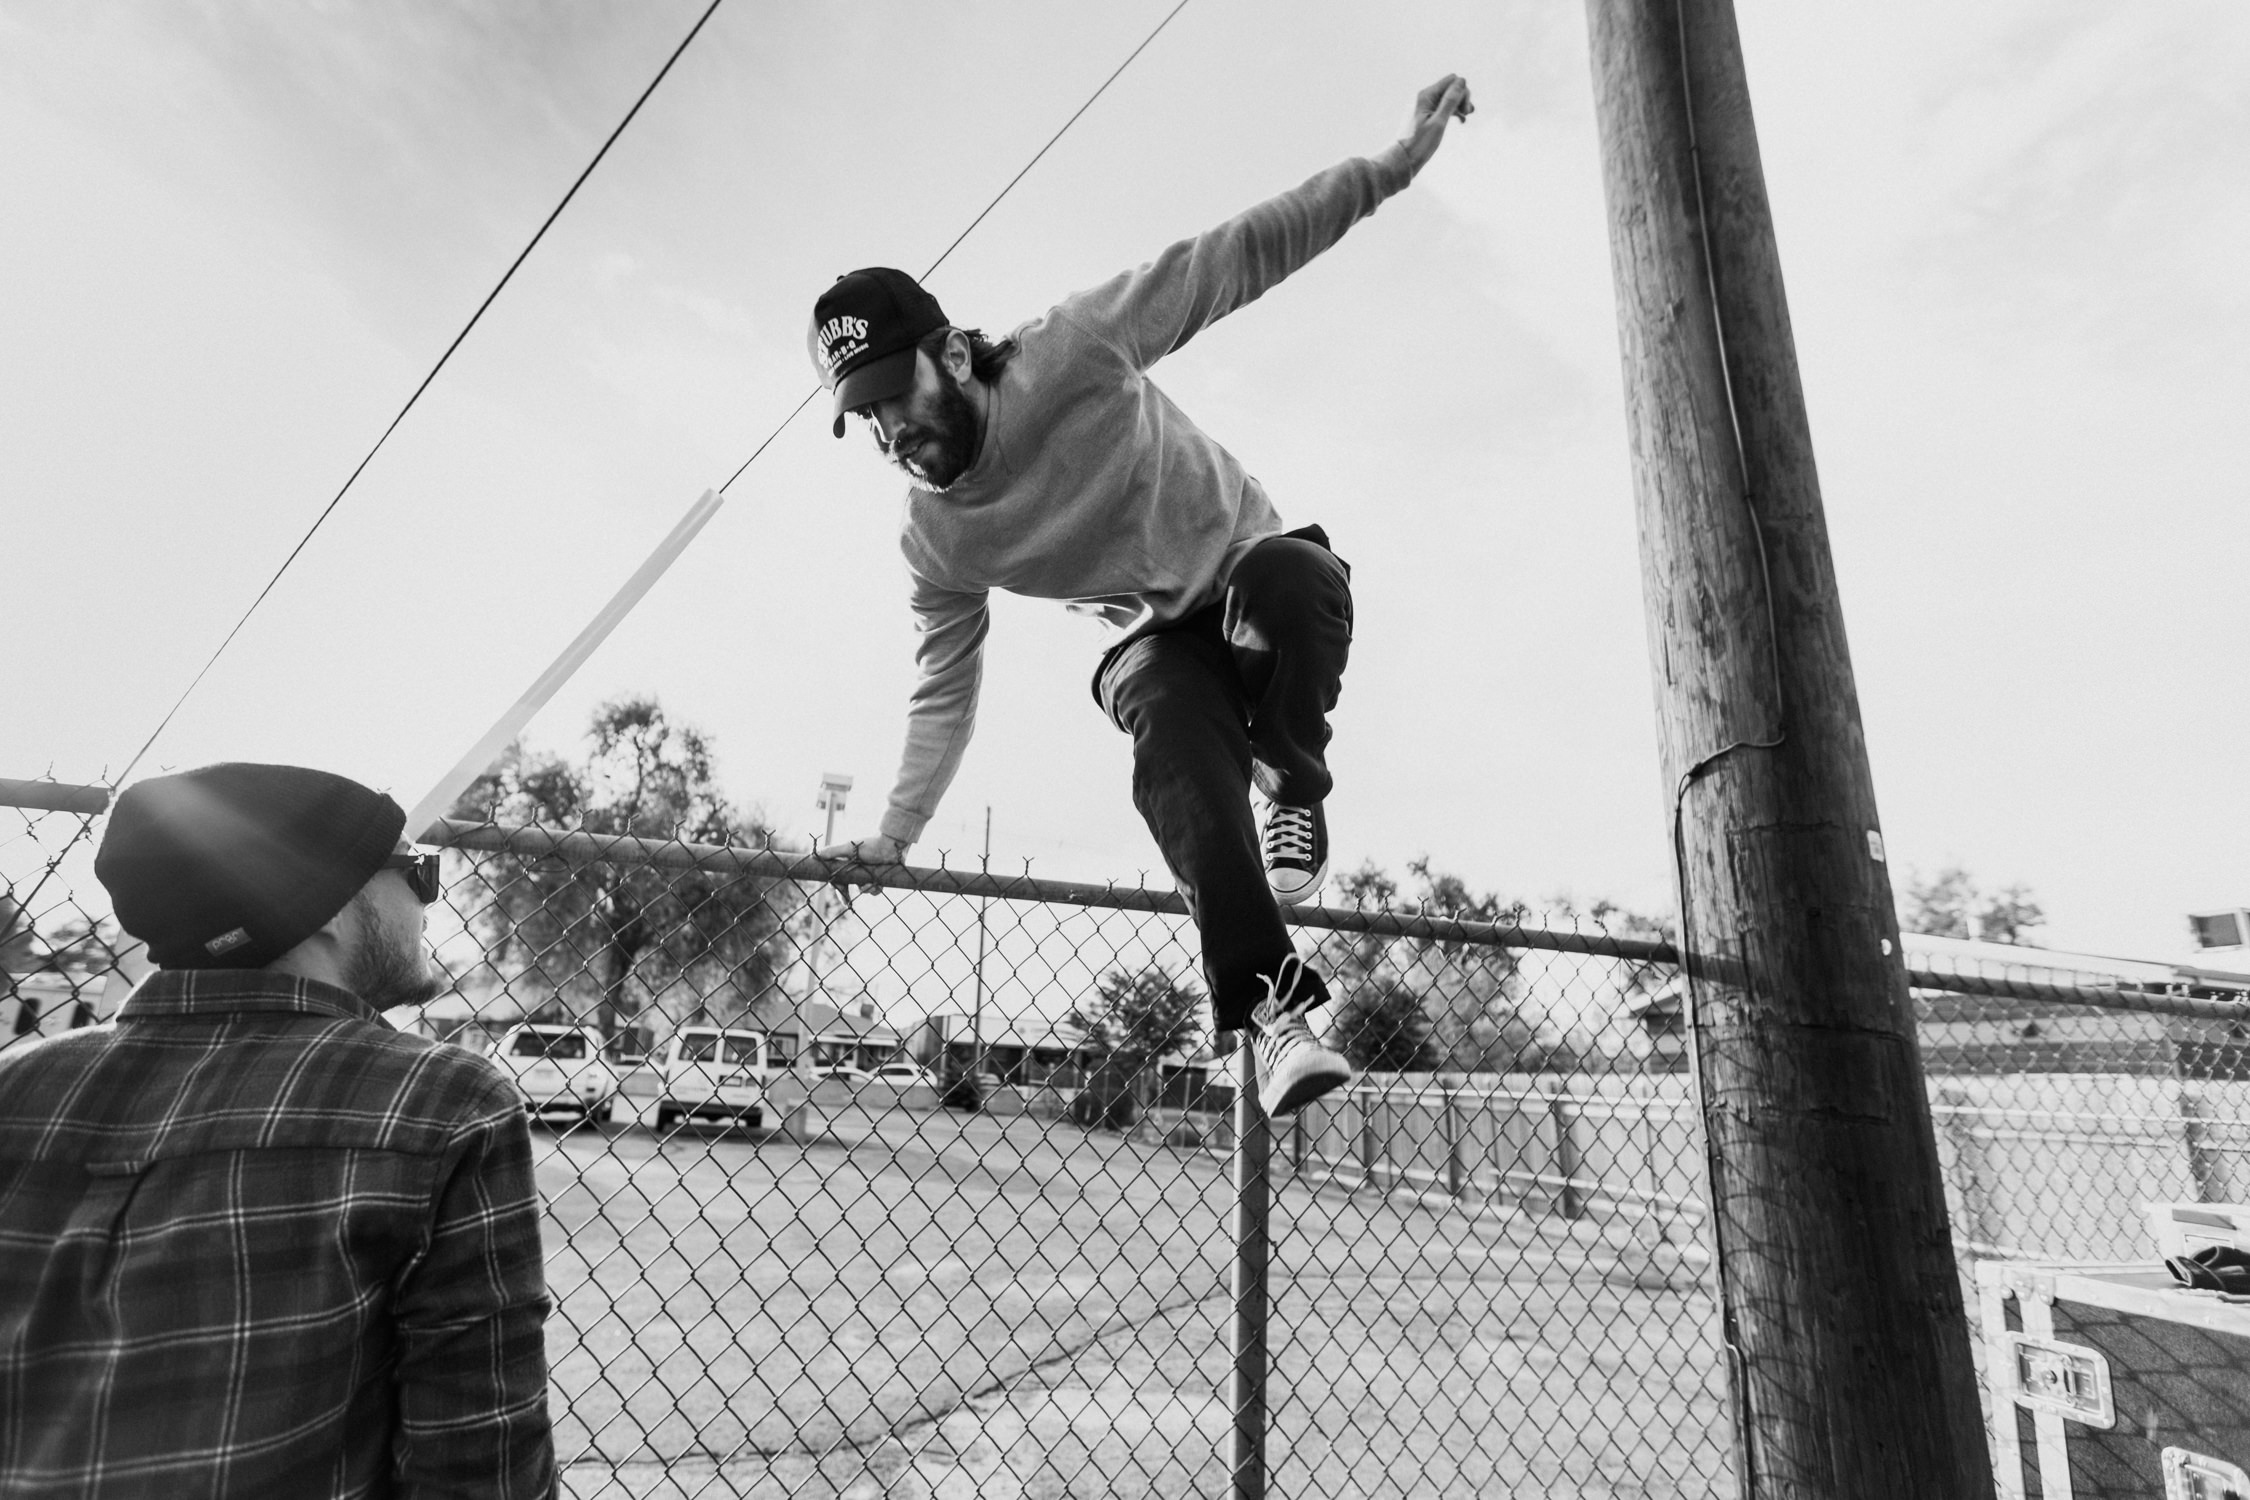 sean-tour-candid-jumping-fence-smallpools-AnnaLeeMedia